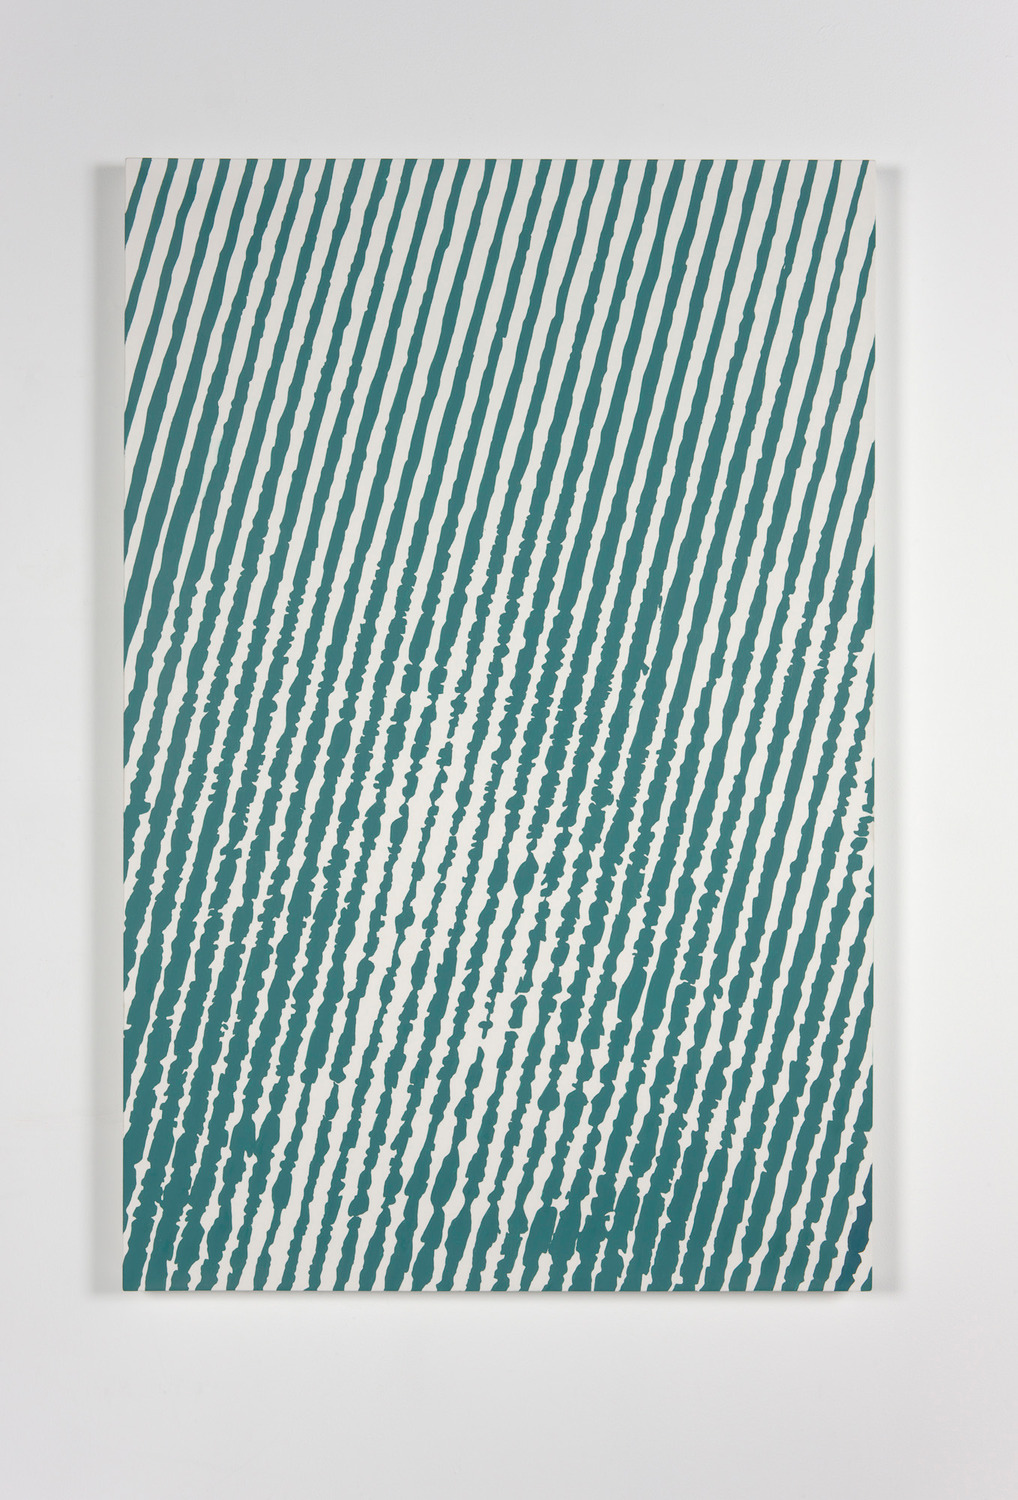 Vague Wake, 2008, Oil on canvas, 80 x 120 cm